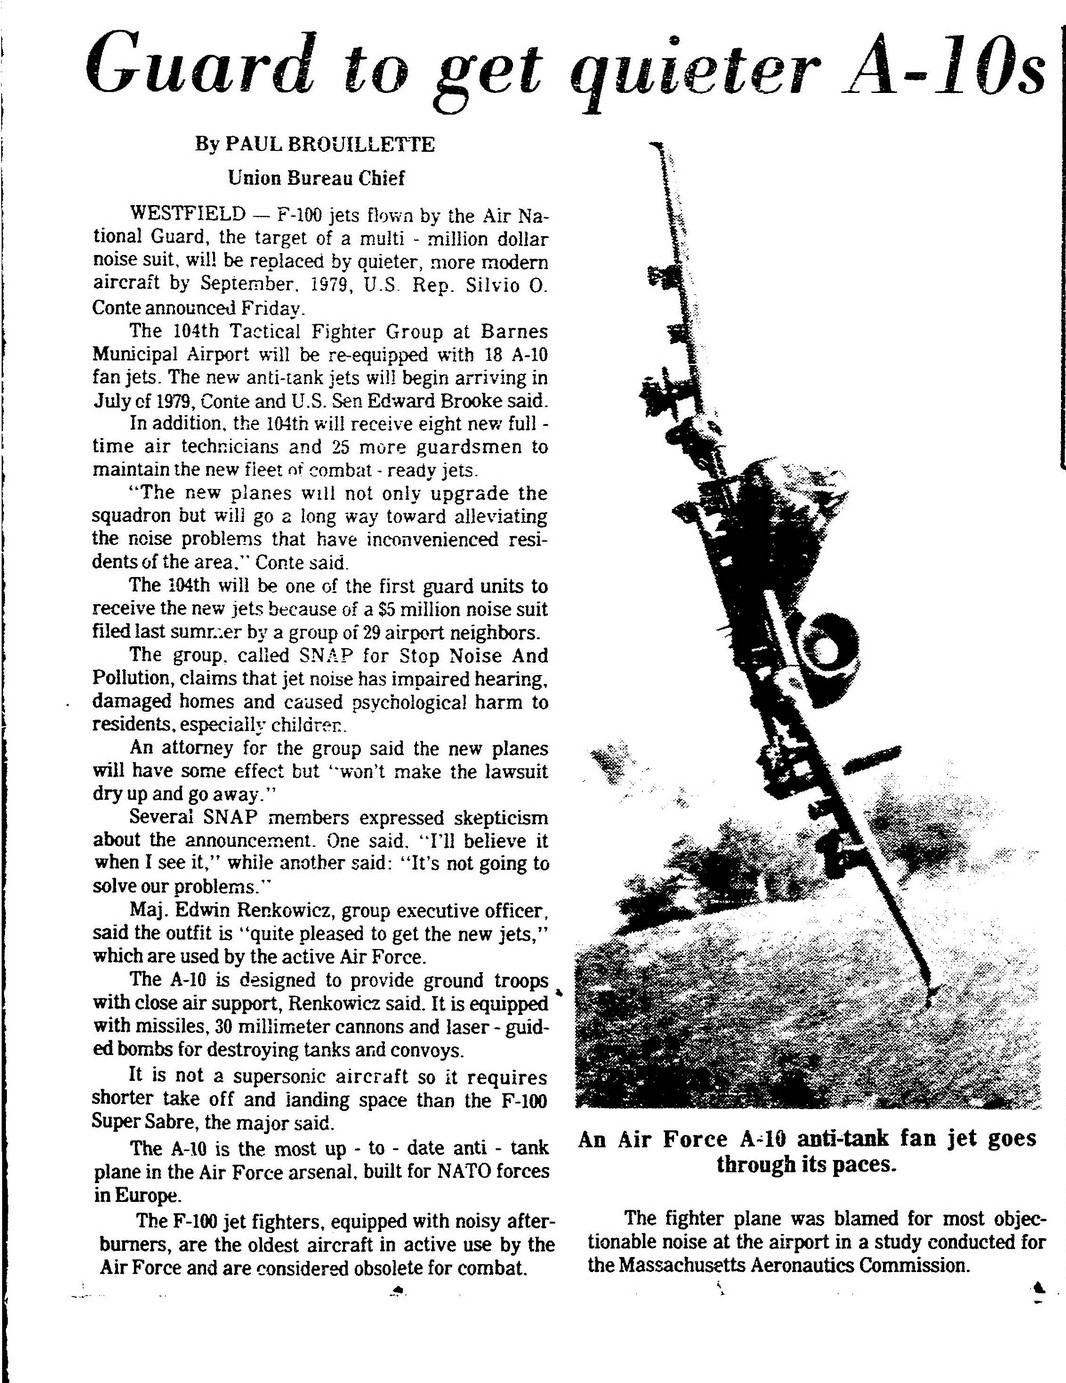 From The Republican archives: Images of Page 1 from the